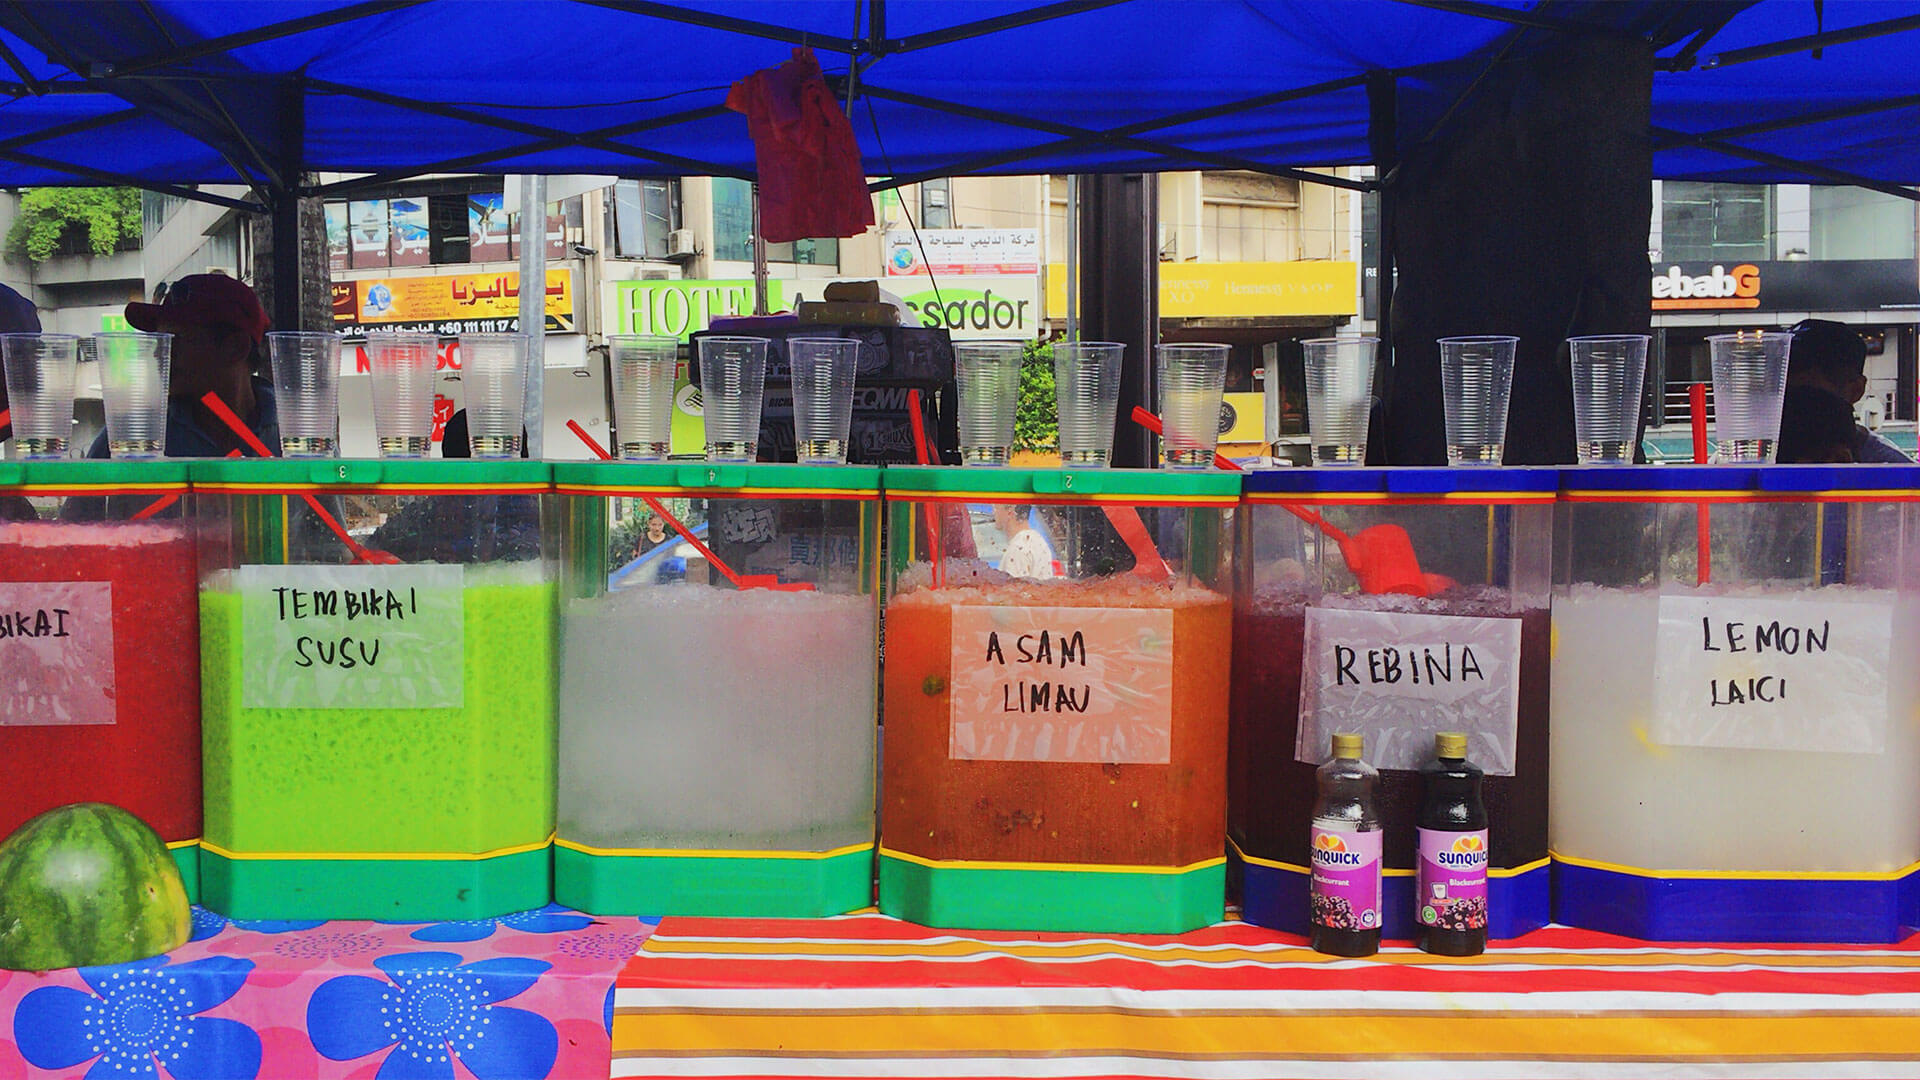 Street fruit juice bar with a variety of beverage options